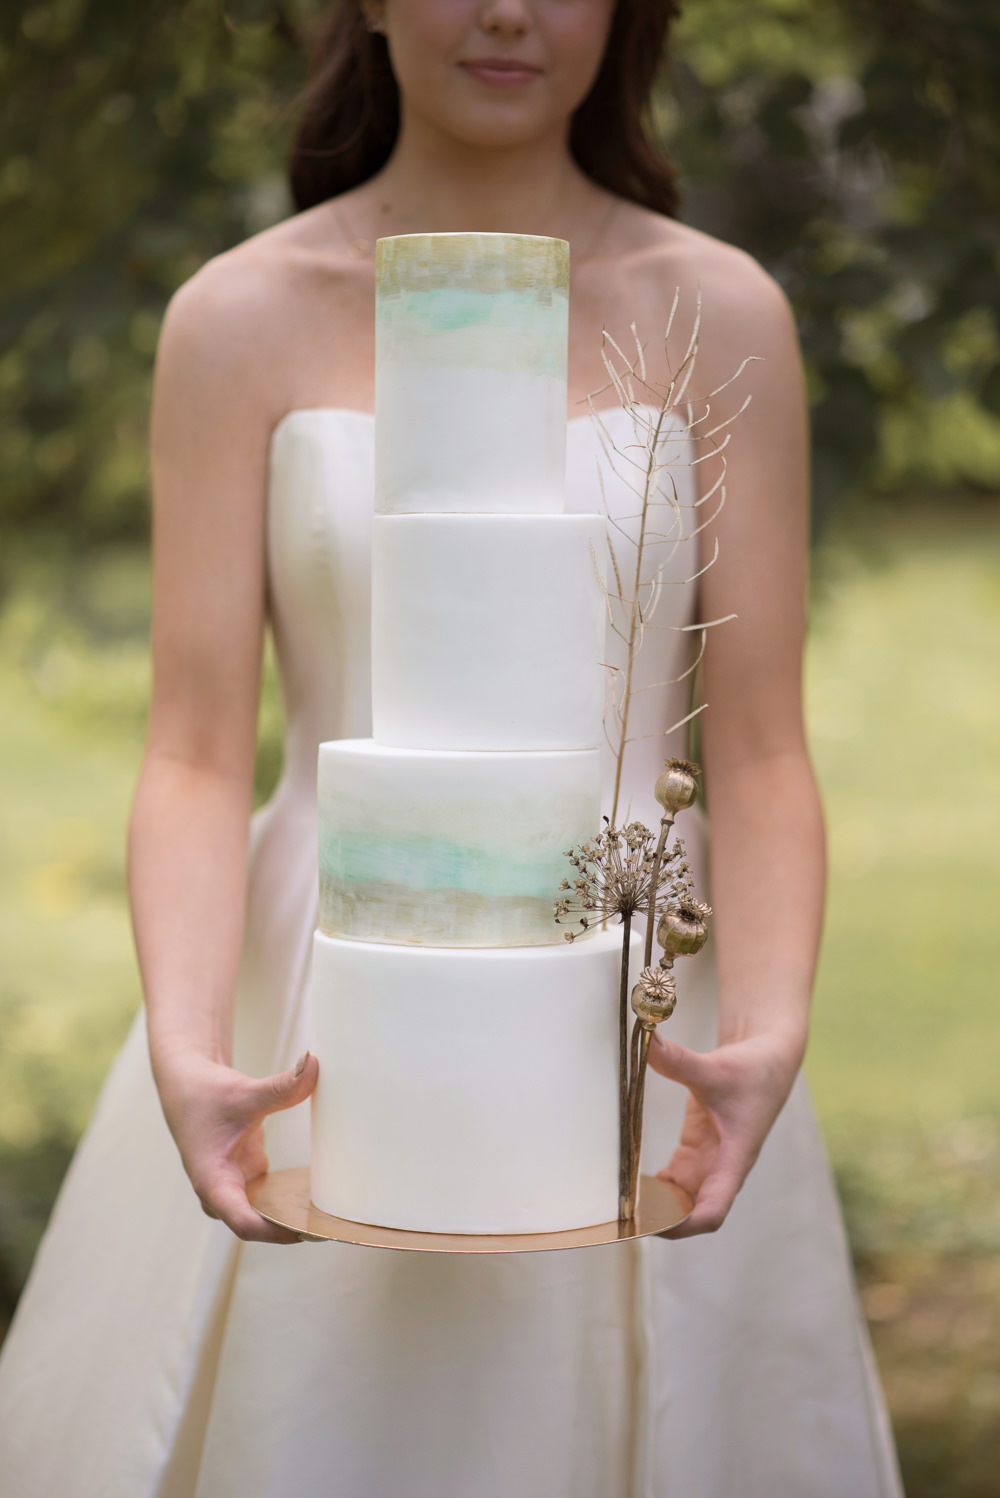 Cake Iced Tall Green Gold Painted Watercolour Flower Heads Minimalist Wedding Ideas Nicola Belson Photography